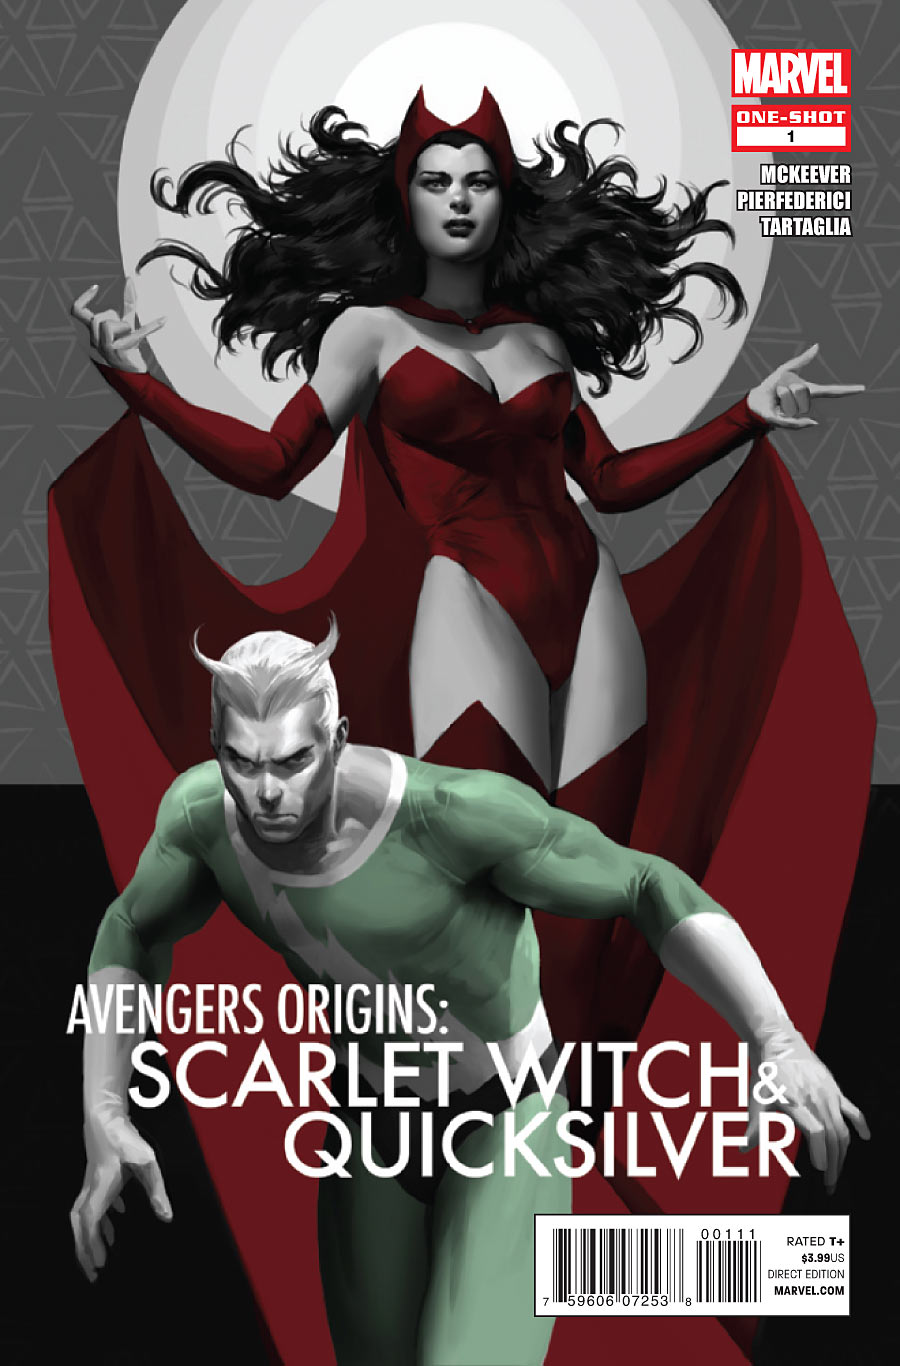 Avengers Origins: The Scarlet Witch & Quicksilver Vol 1 1